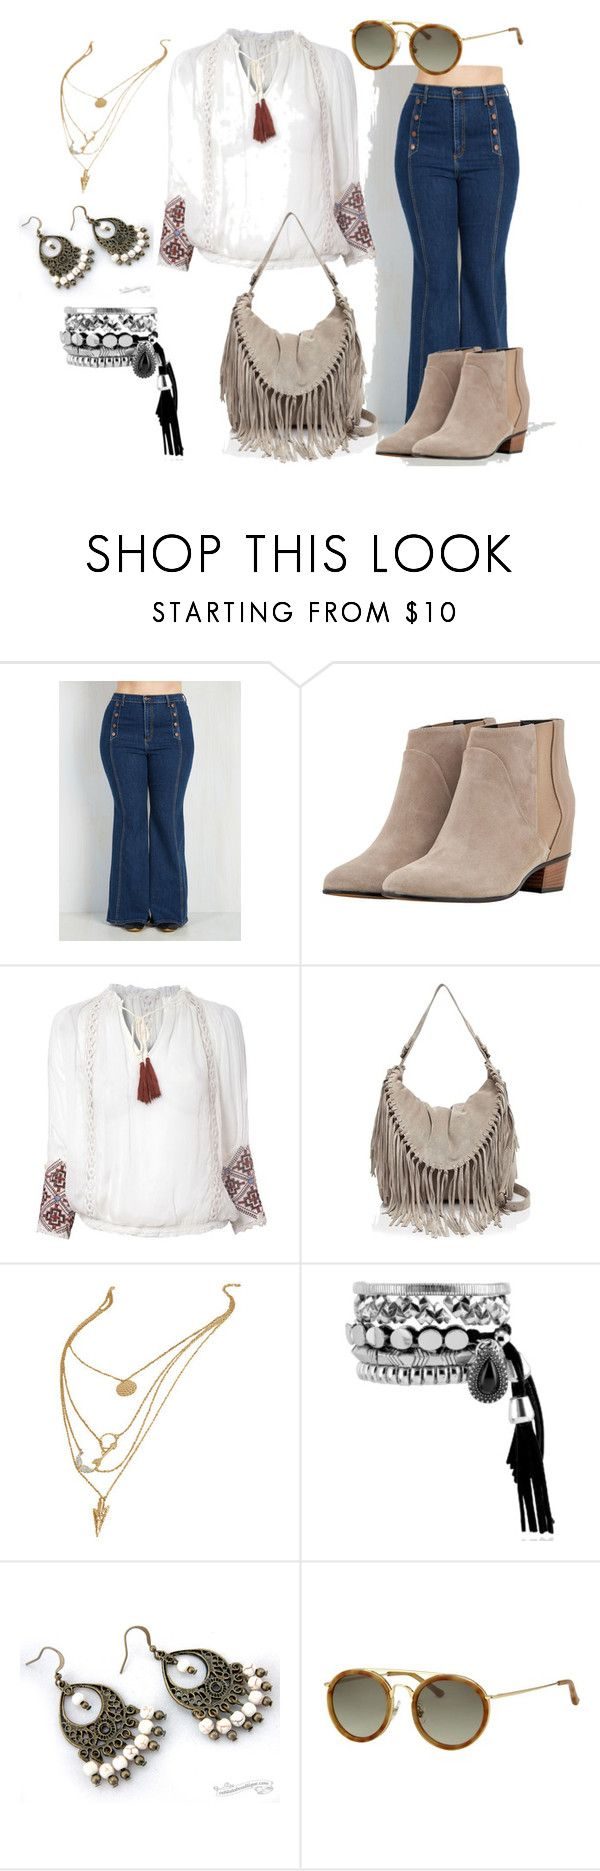 boho 04 by jenifer-mendes on Polyvore featuring Lipsy, Augusta, Sorial and Dries Van Noten